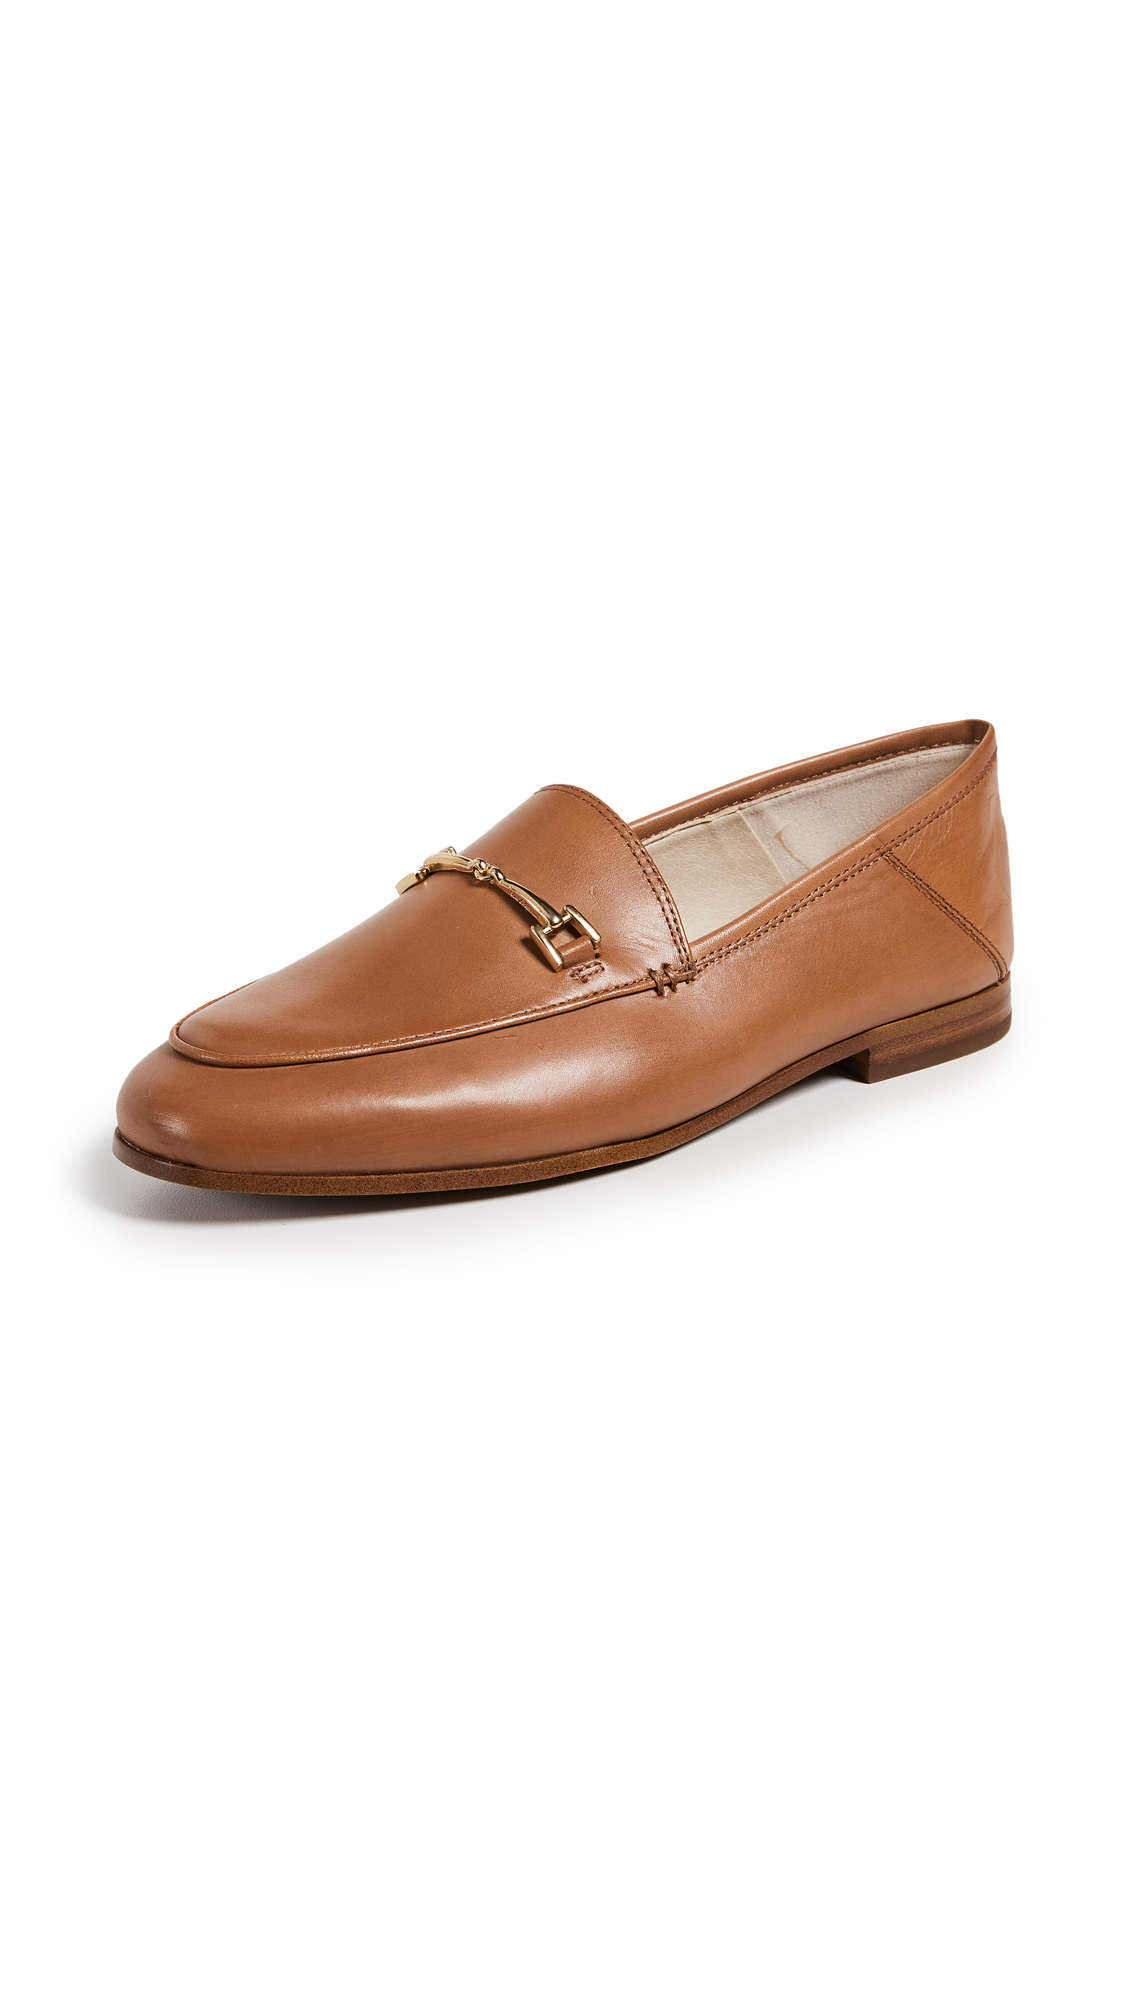 Sam Edelman Loraine Loafers - Saddle